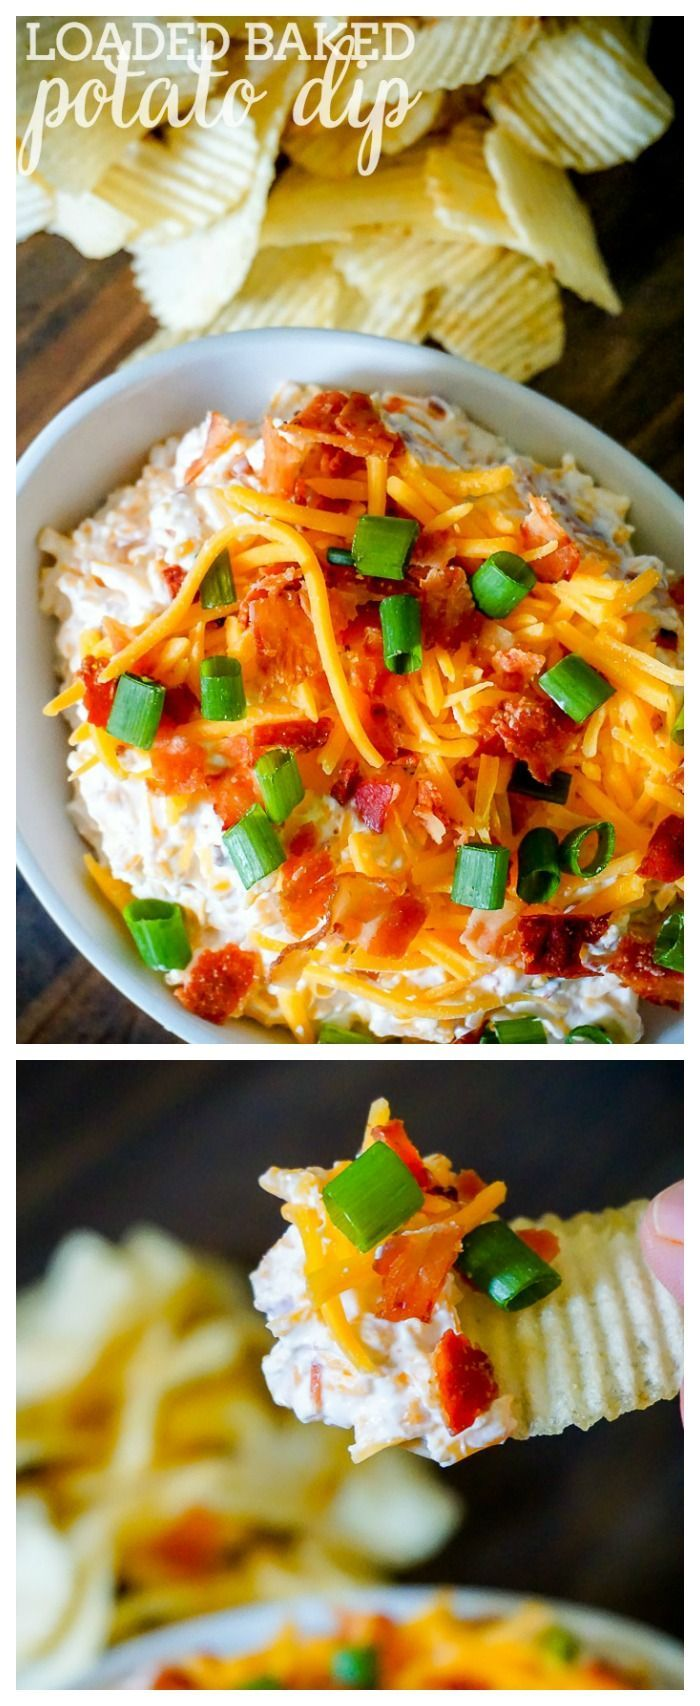 Loaded Baked Potato Dip is an all time favorite party recipe and game day dip with my friends and family! It doesn't get much better than bacon and cheese! | The Love Nerds